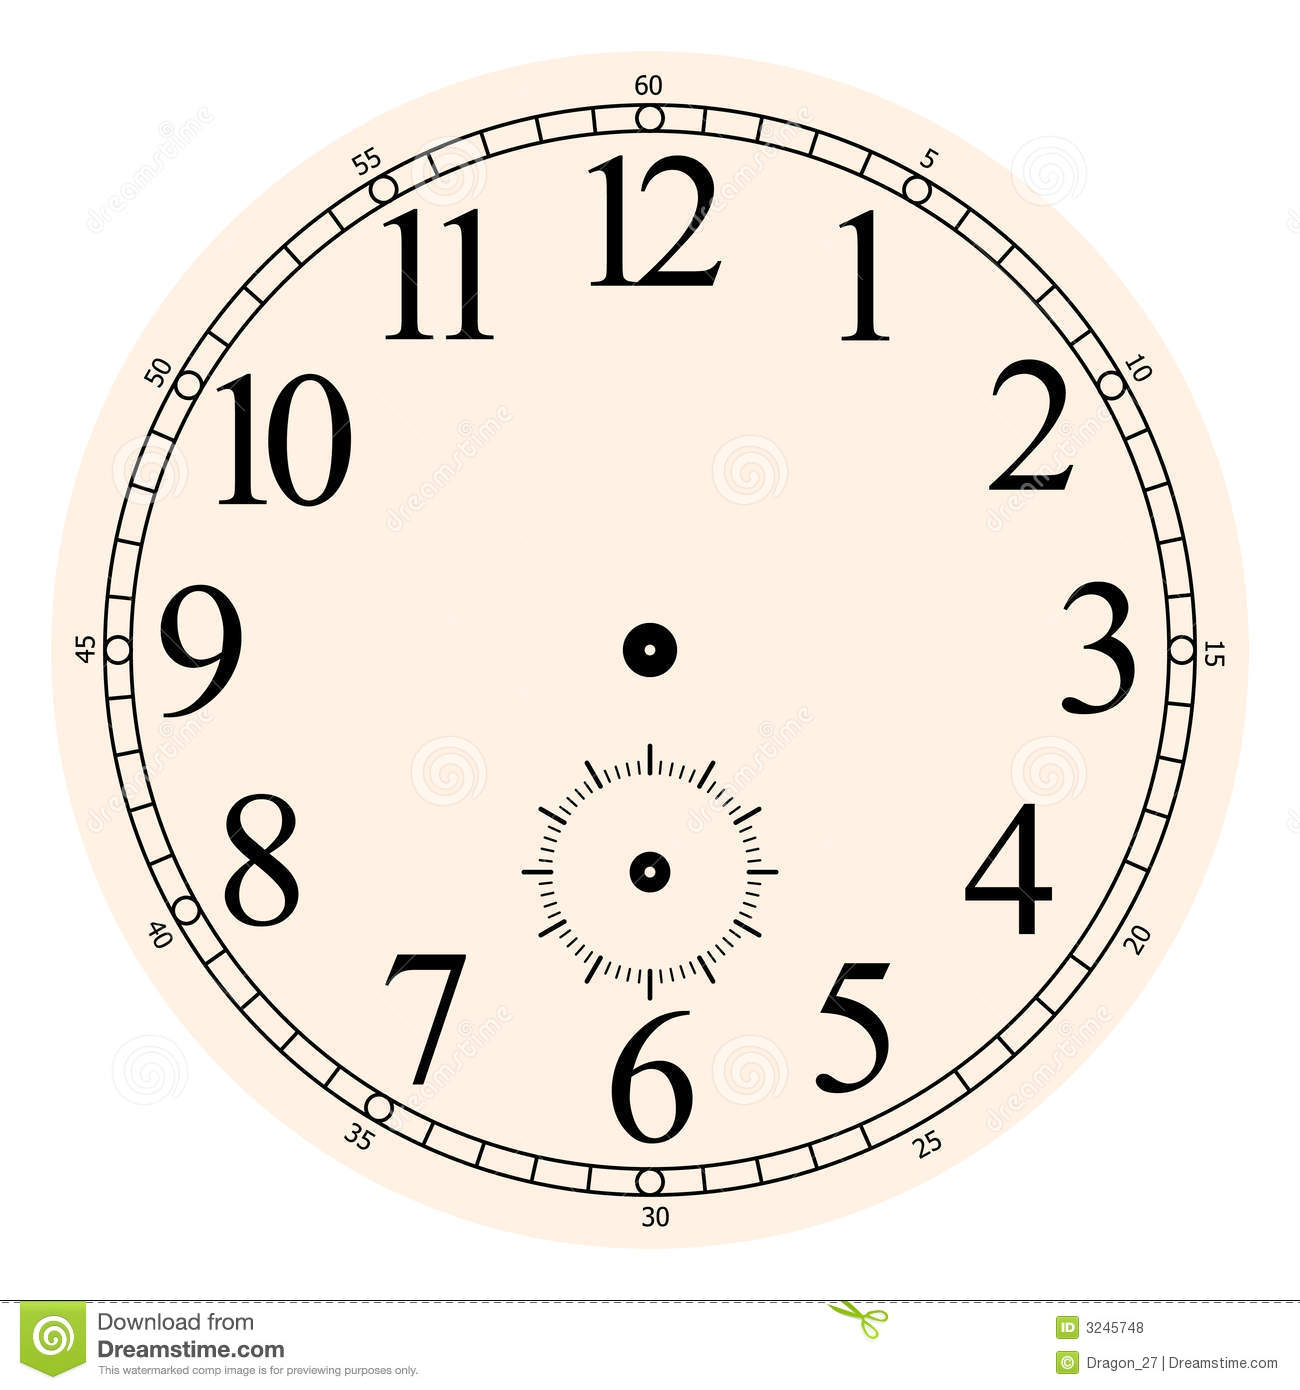 worksheet Clock Face With Hands clock face royalty free stock photos image 3245748 photo download face